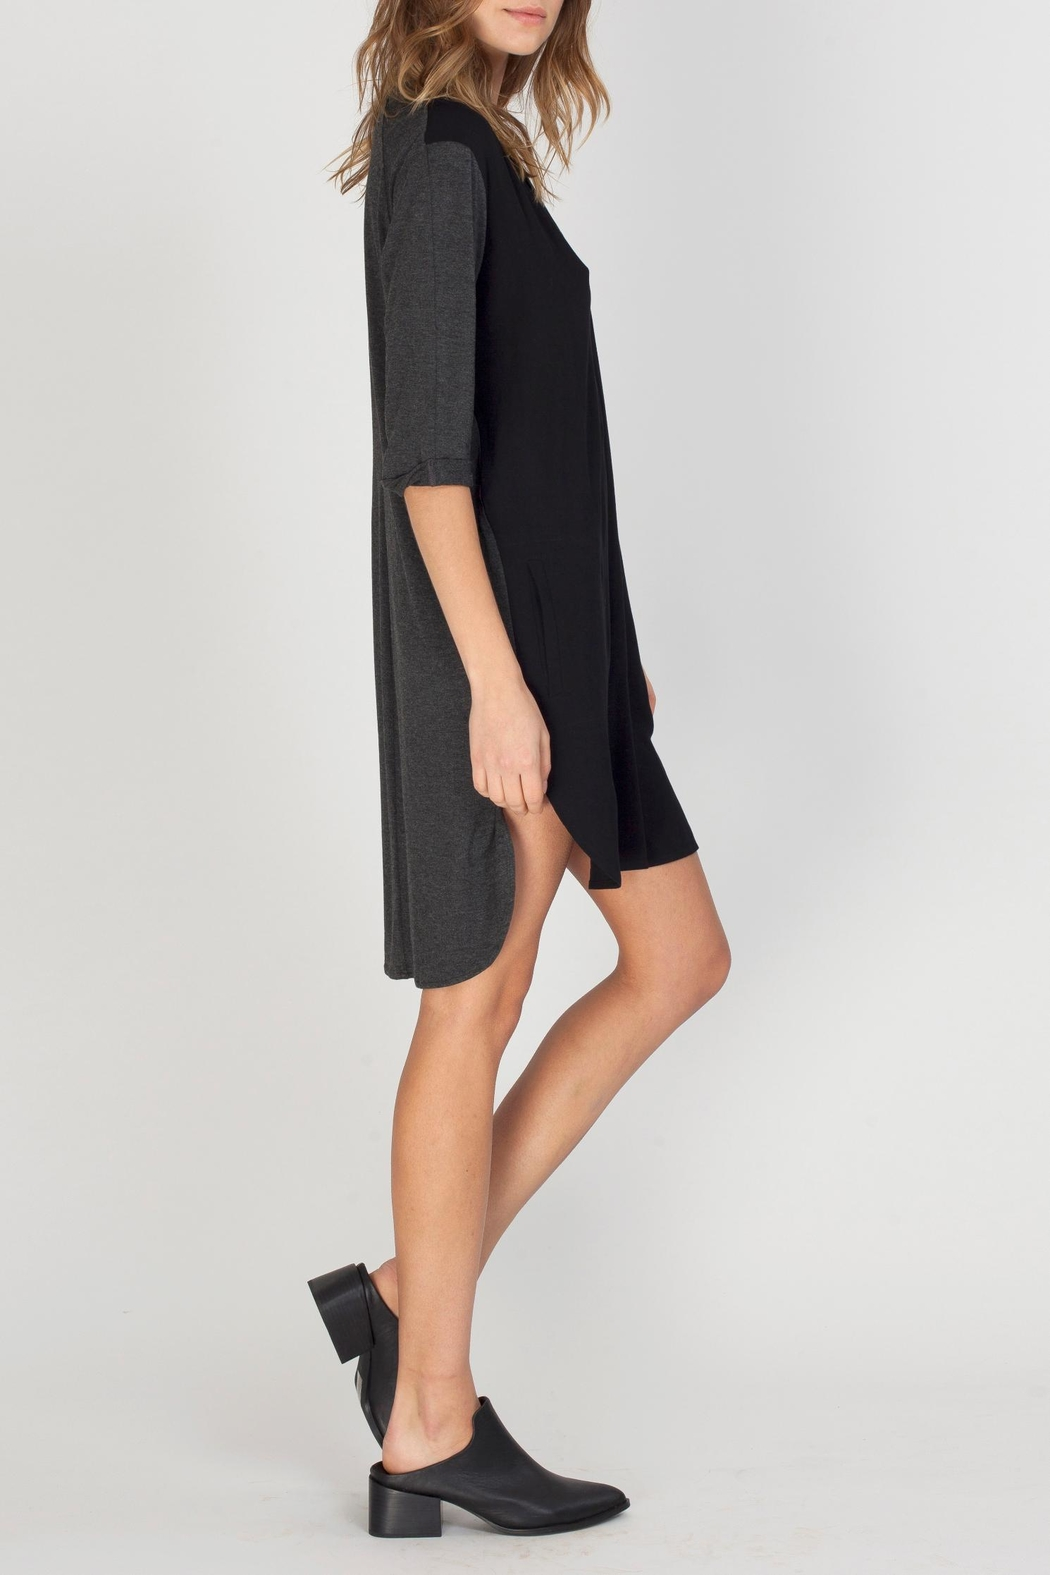 Gentle Fawn Taye Two Tone Dress - Front Full Image